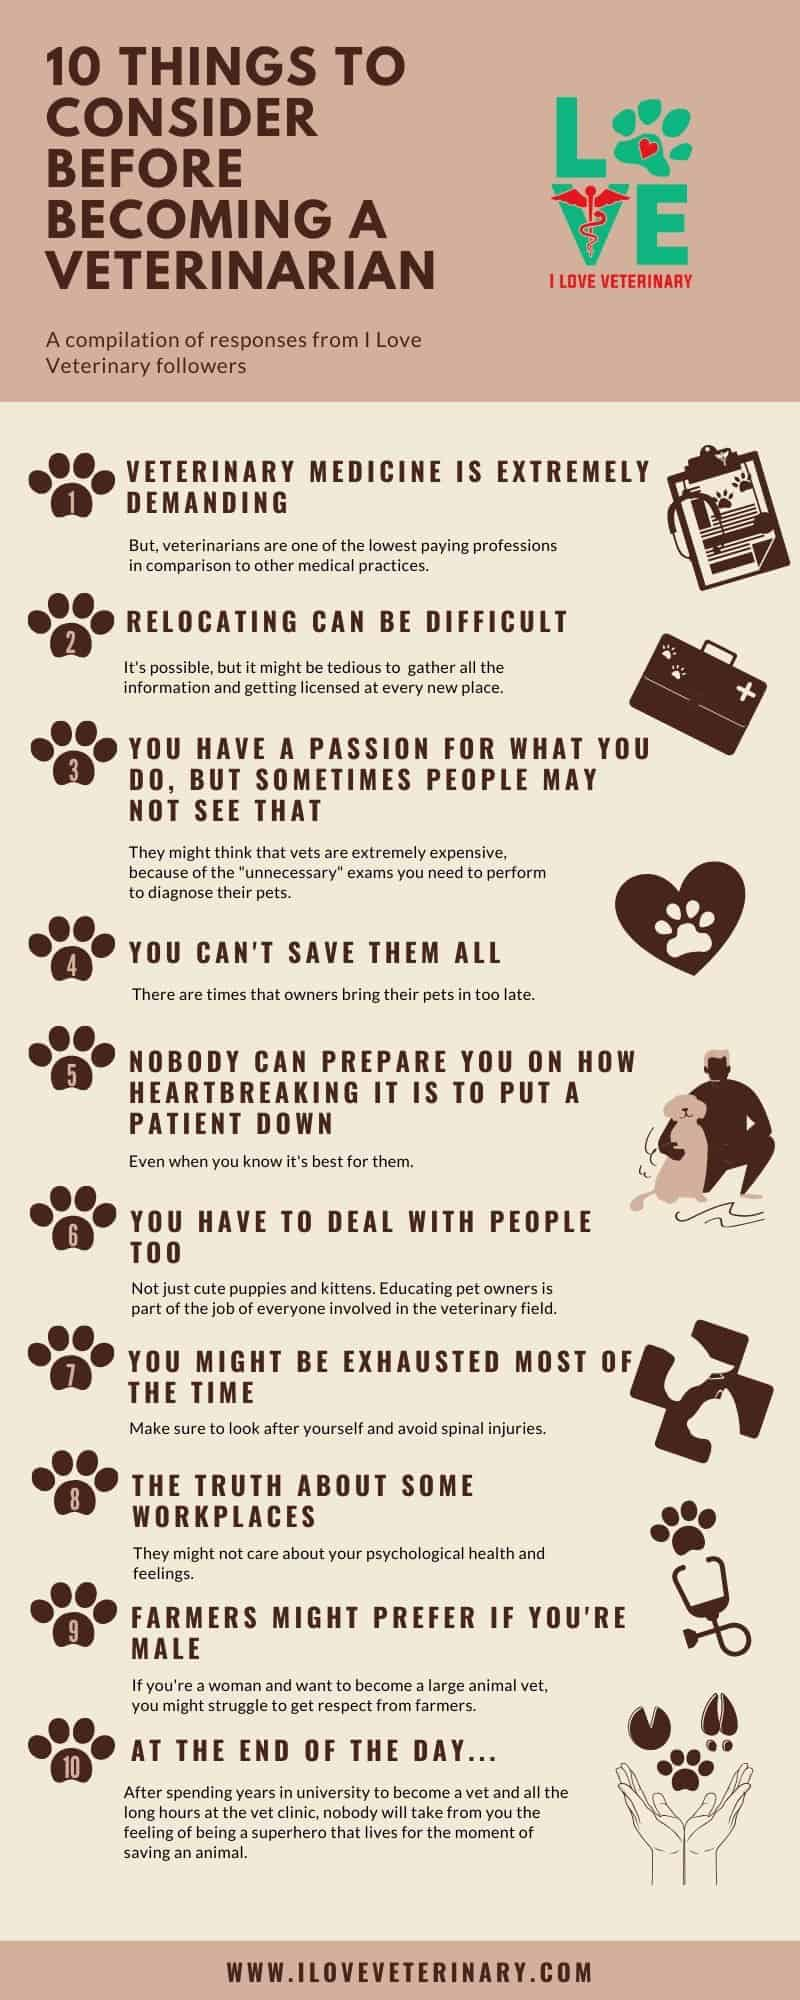 10 Things to consider before becoming a veterinarian I Love Veterinary